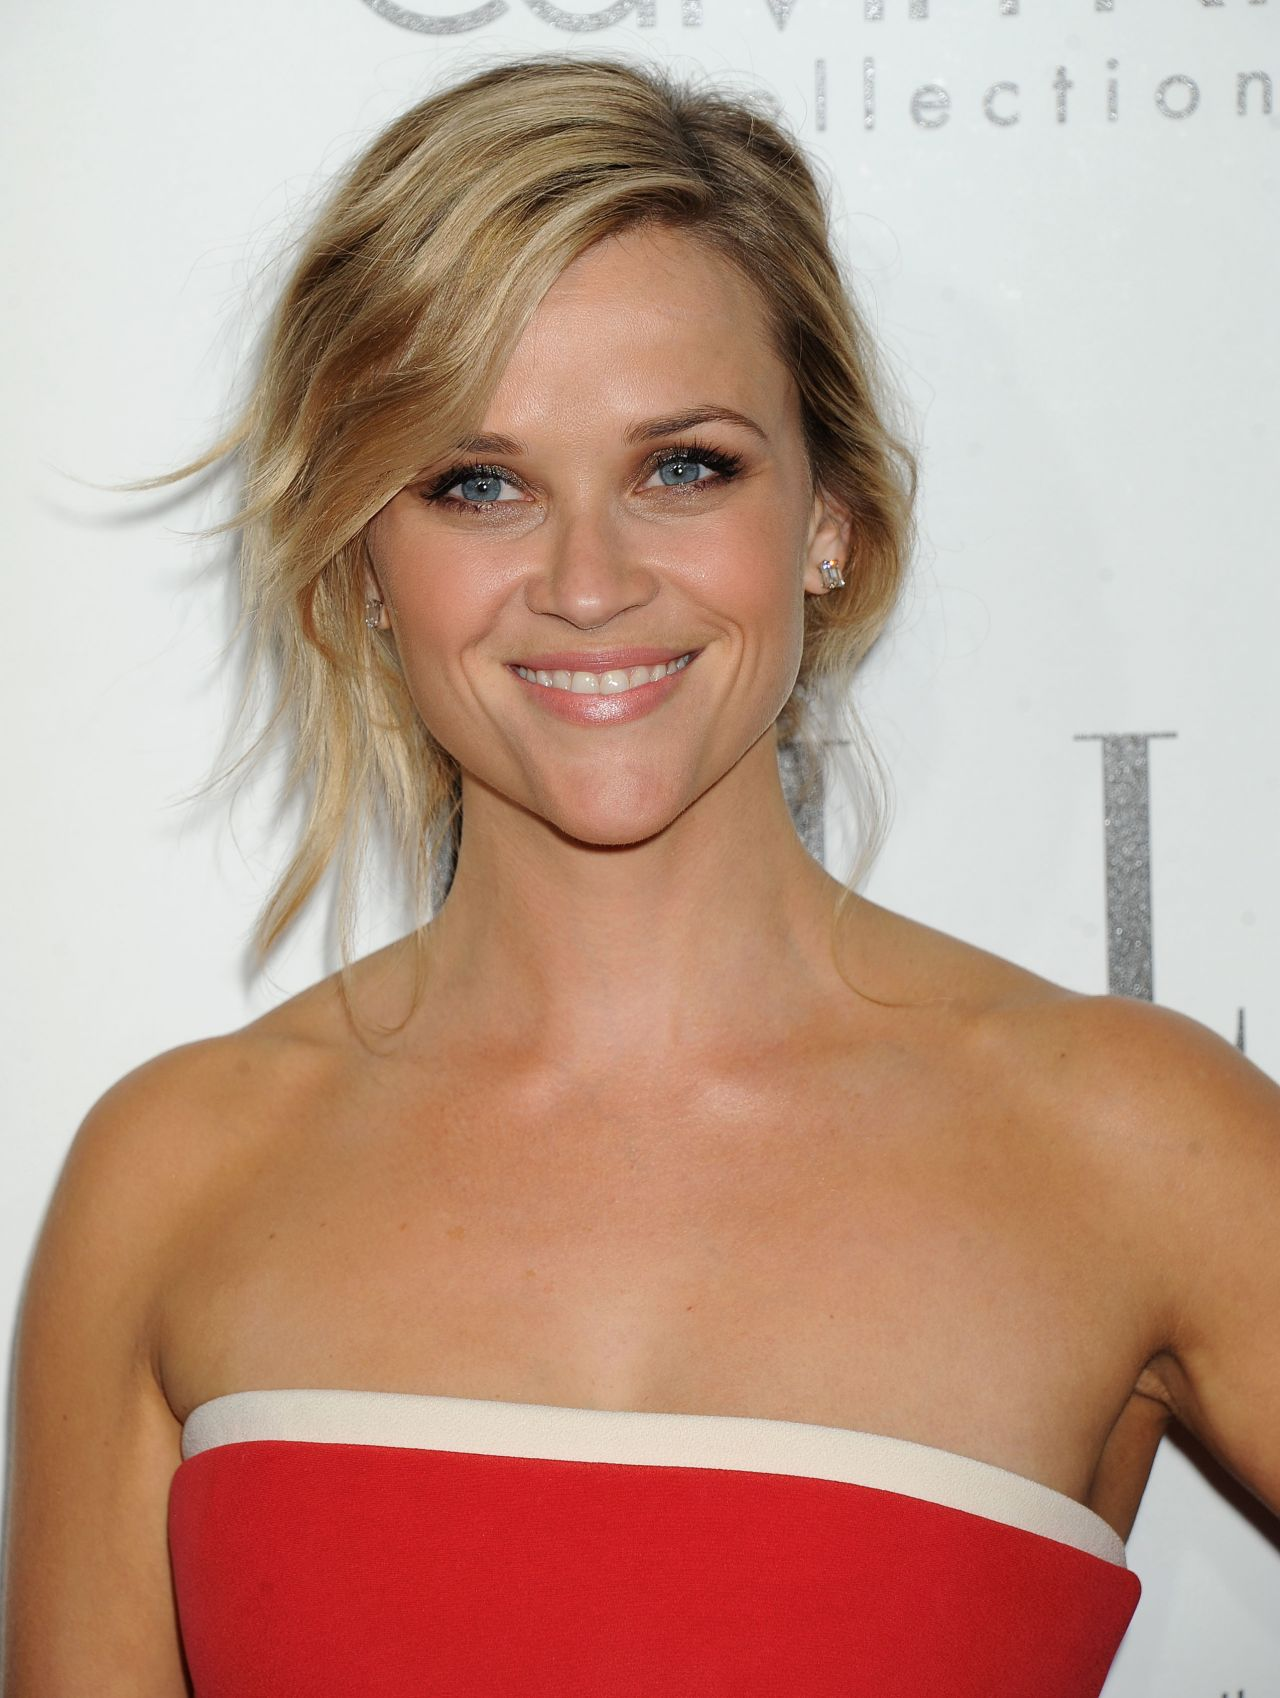 Reese Witherspoon - ELLE's 20th Annual Women in Hollywood Awards Red Carpet